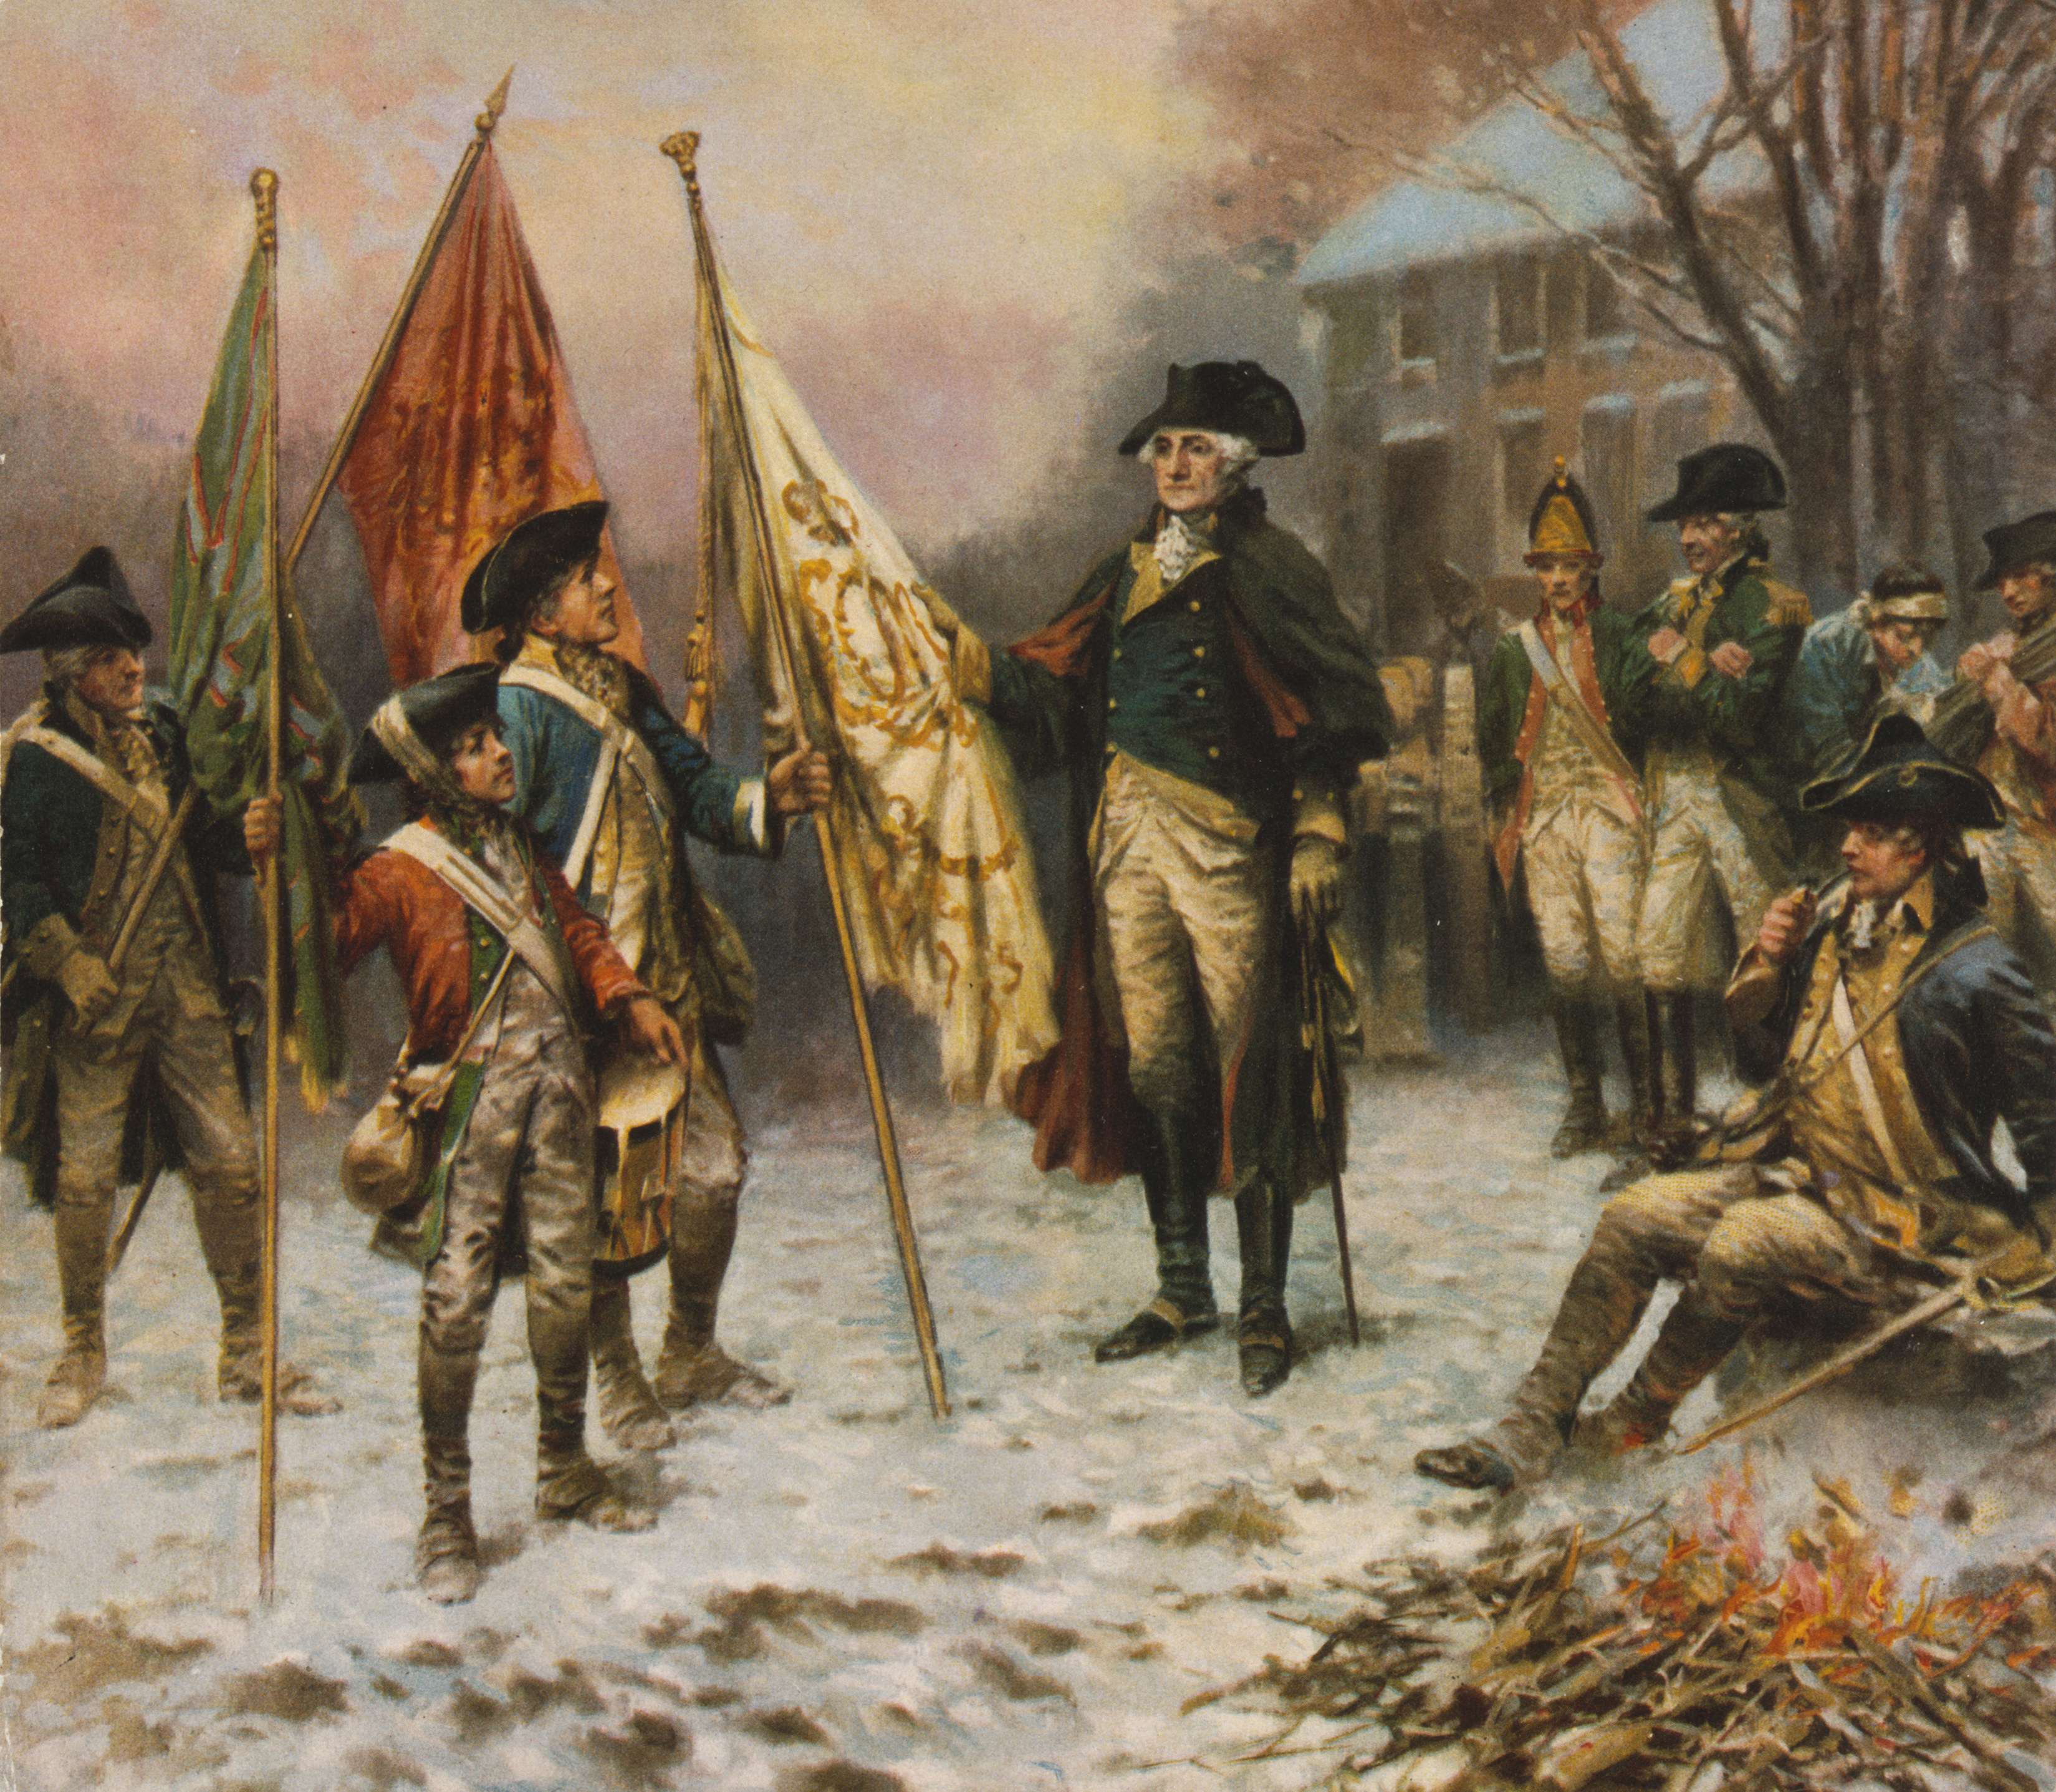 battle of trenton The battle of trenton, fought december 26, 1776, during the american revolution, saw general george washington cross the delaware to a much-needed victory.